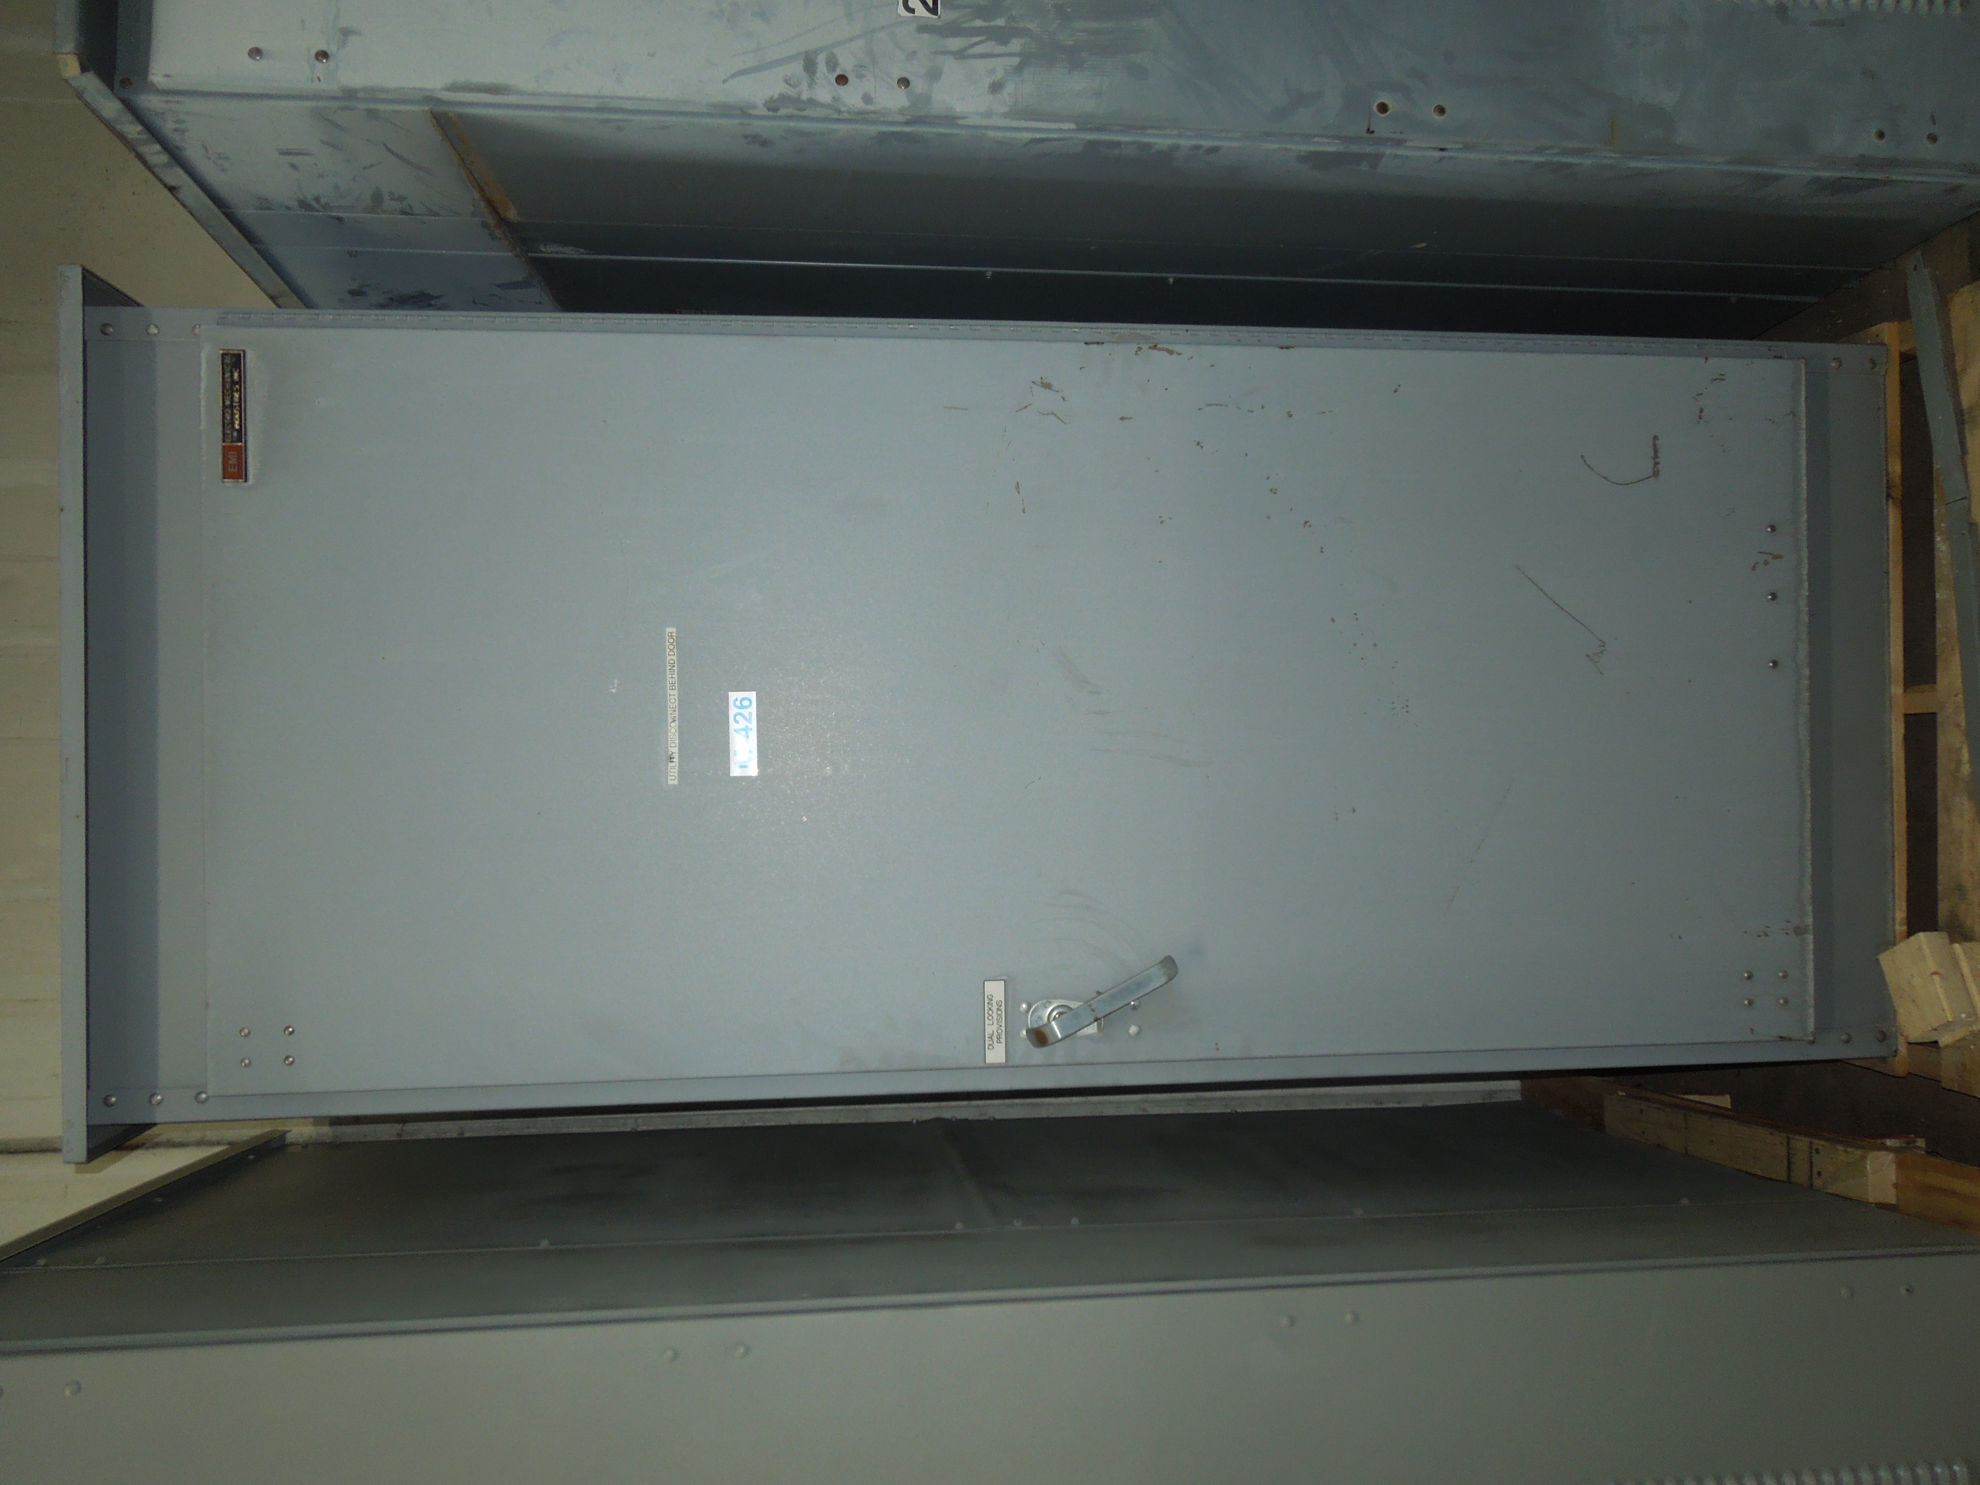 Picture of EMI MBPS Switchboard VLB348-ST Fusible Main 1200 Amp 480 VAC W/ GF Relay Nema 3R